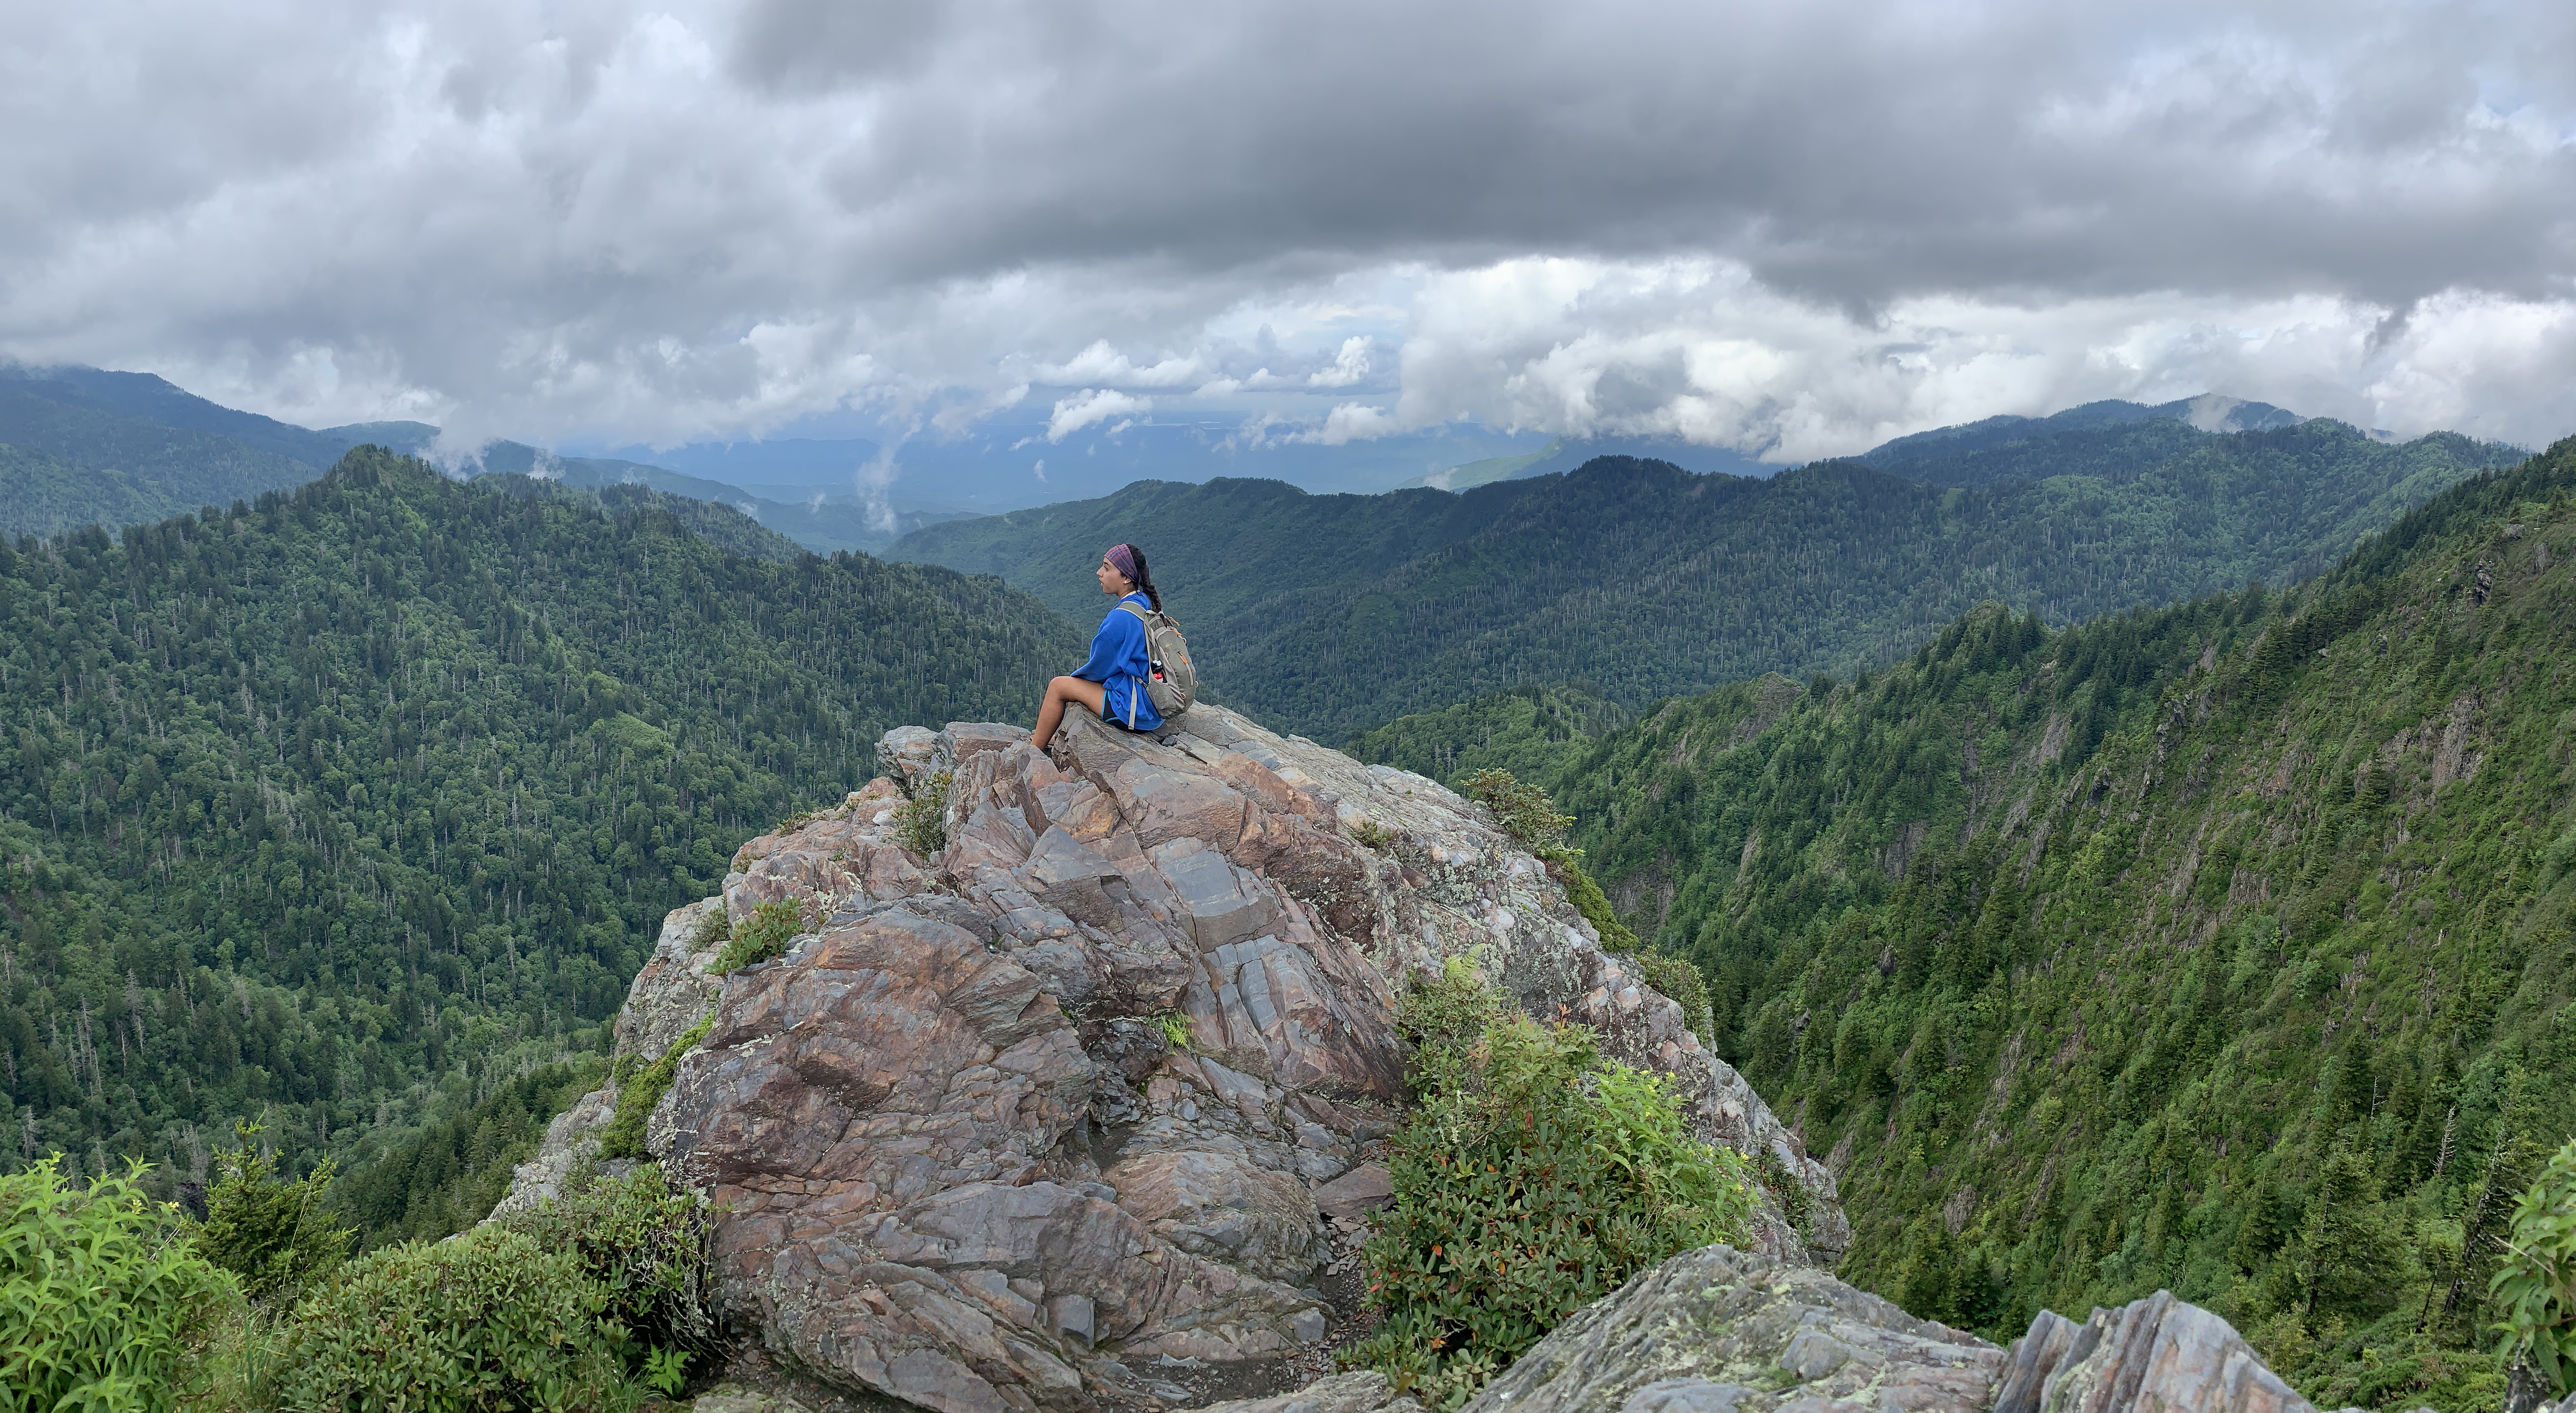 a girl on a boulder in the mountains